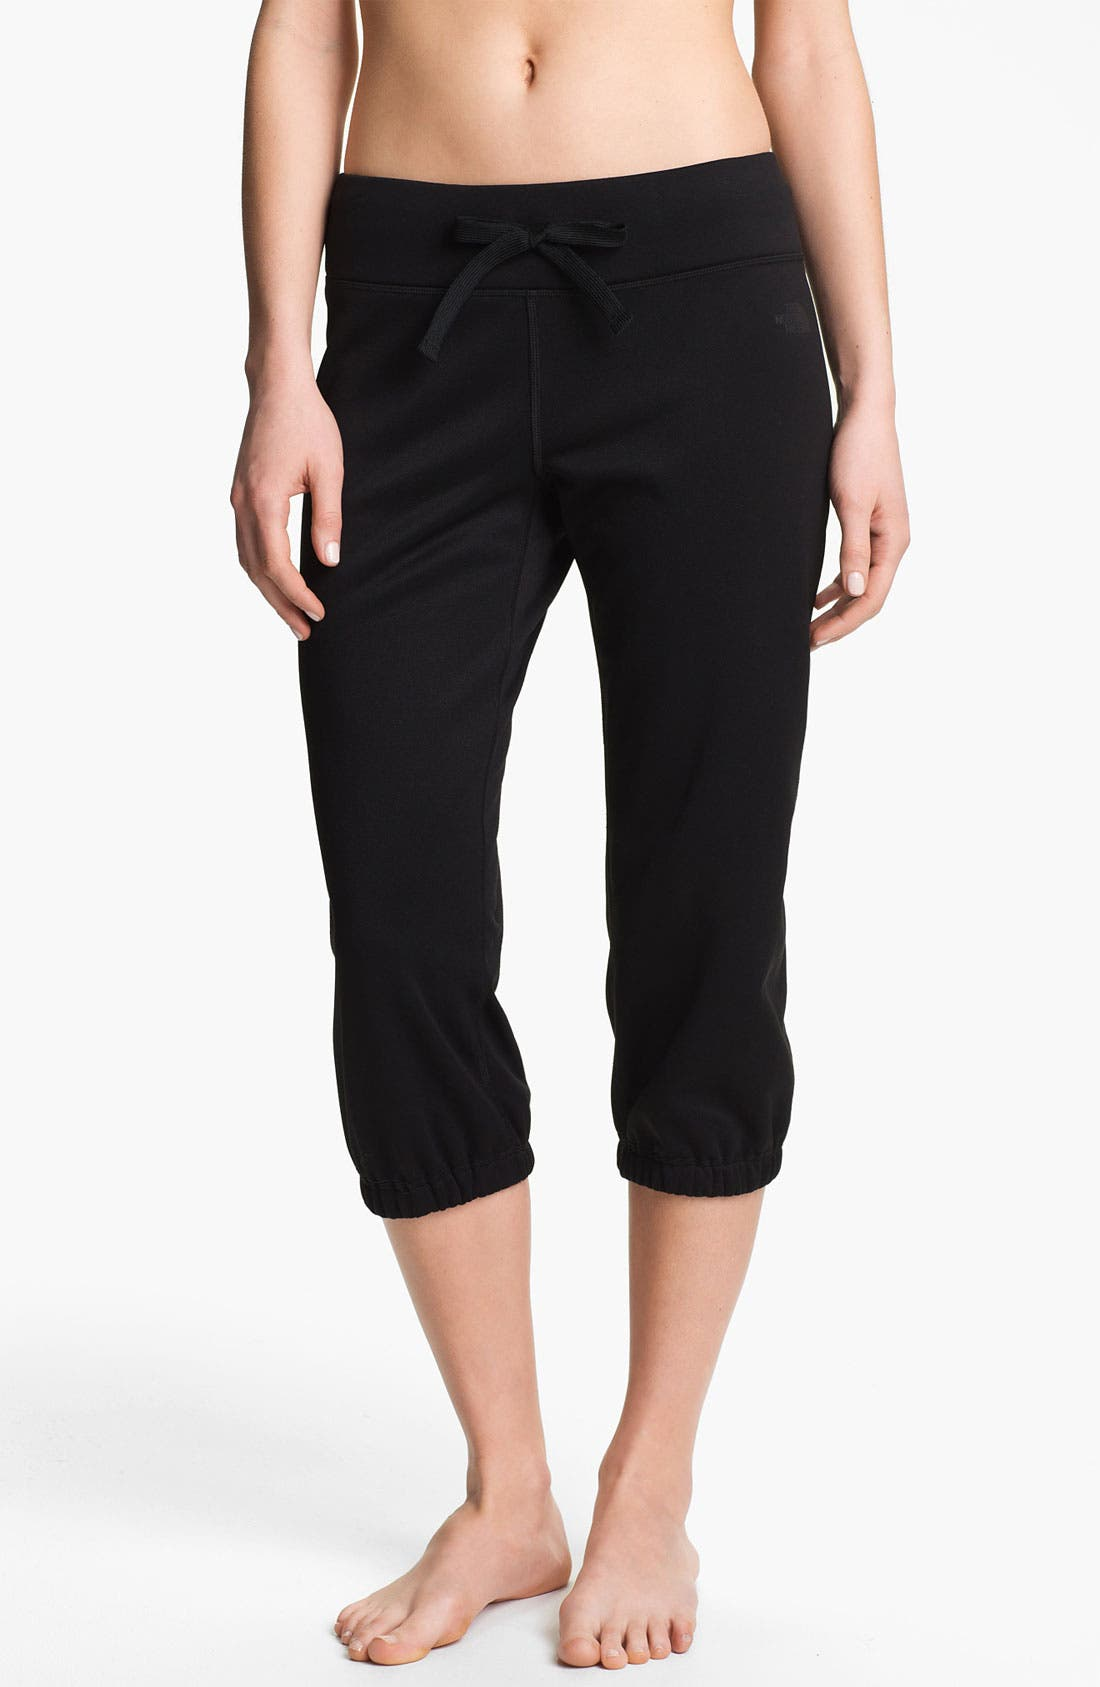 Alternate Image 1 Selected - The North Face 'Fave-Our-Ite' Capri Sweatpants